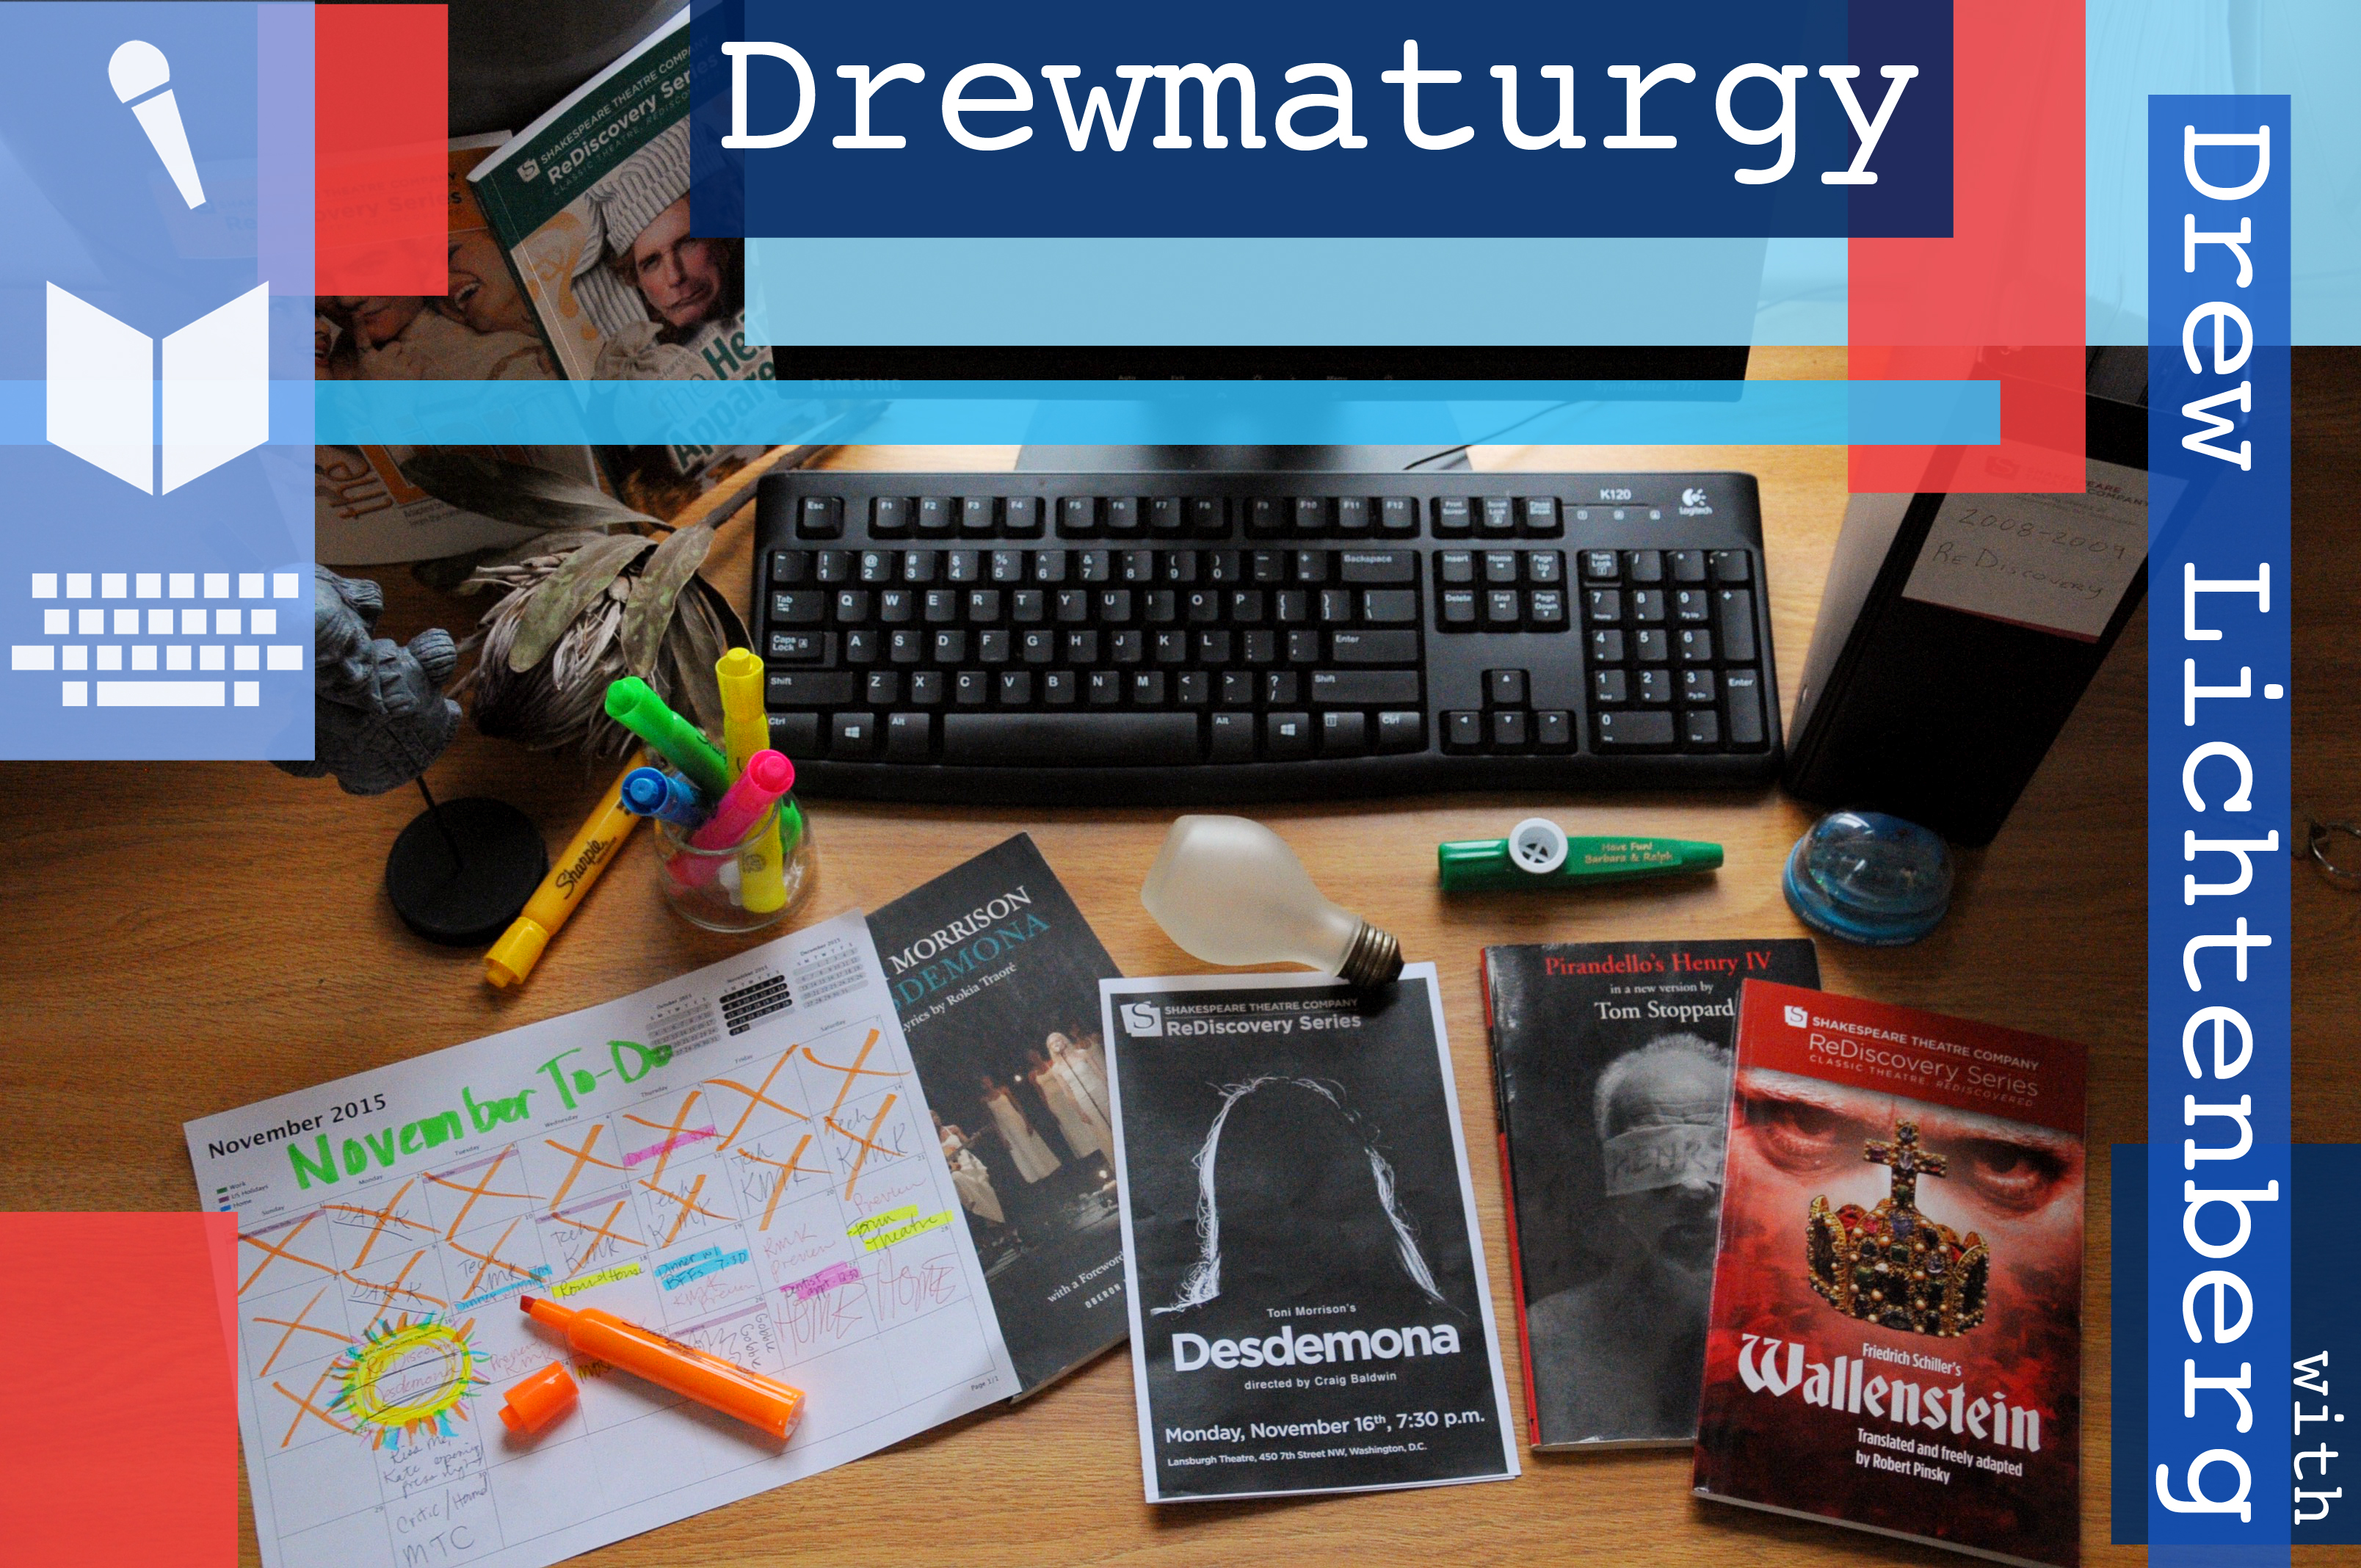 Drewmaturgy. Written by Drew Lichtenberg.